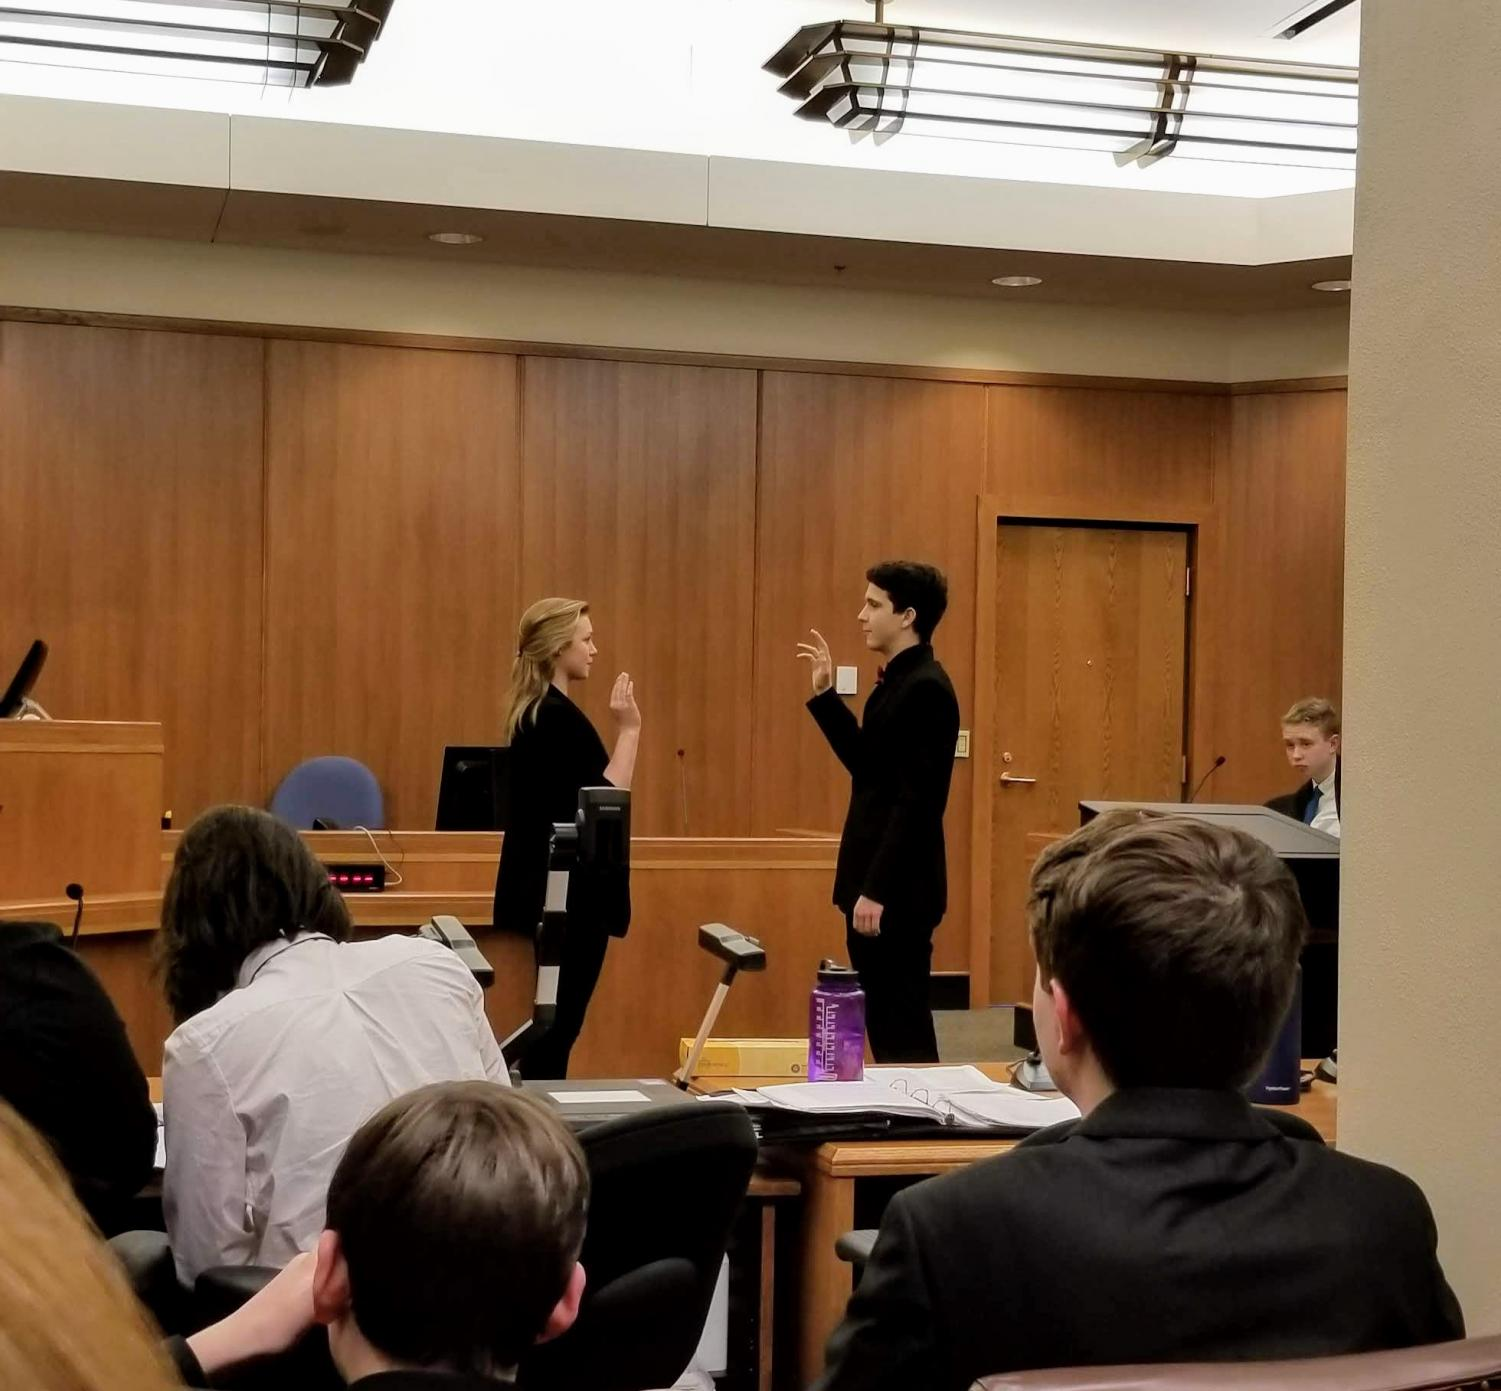 Witness Ellie Youngquist gets sworn in to testify